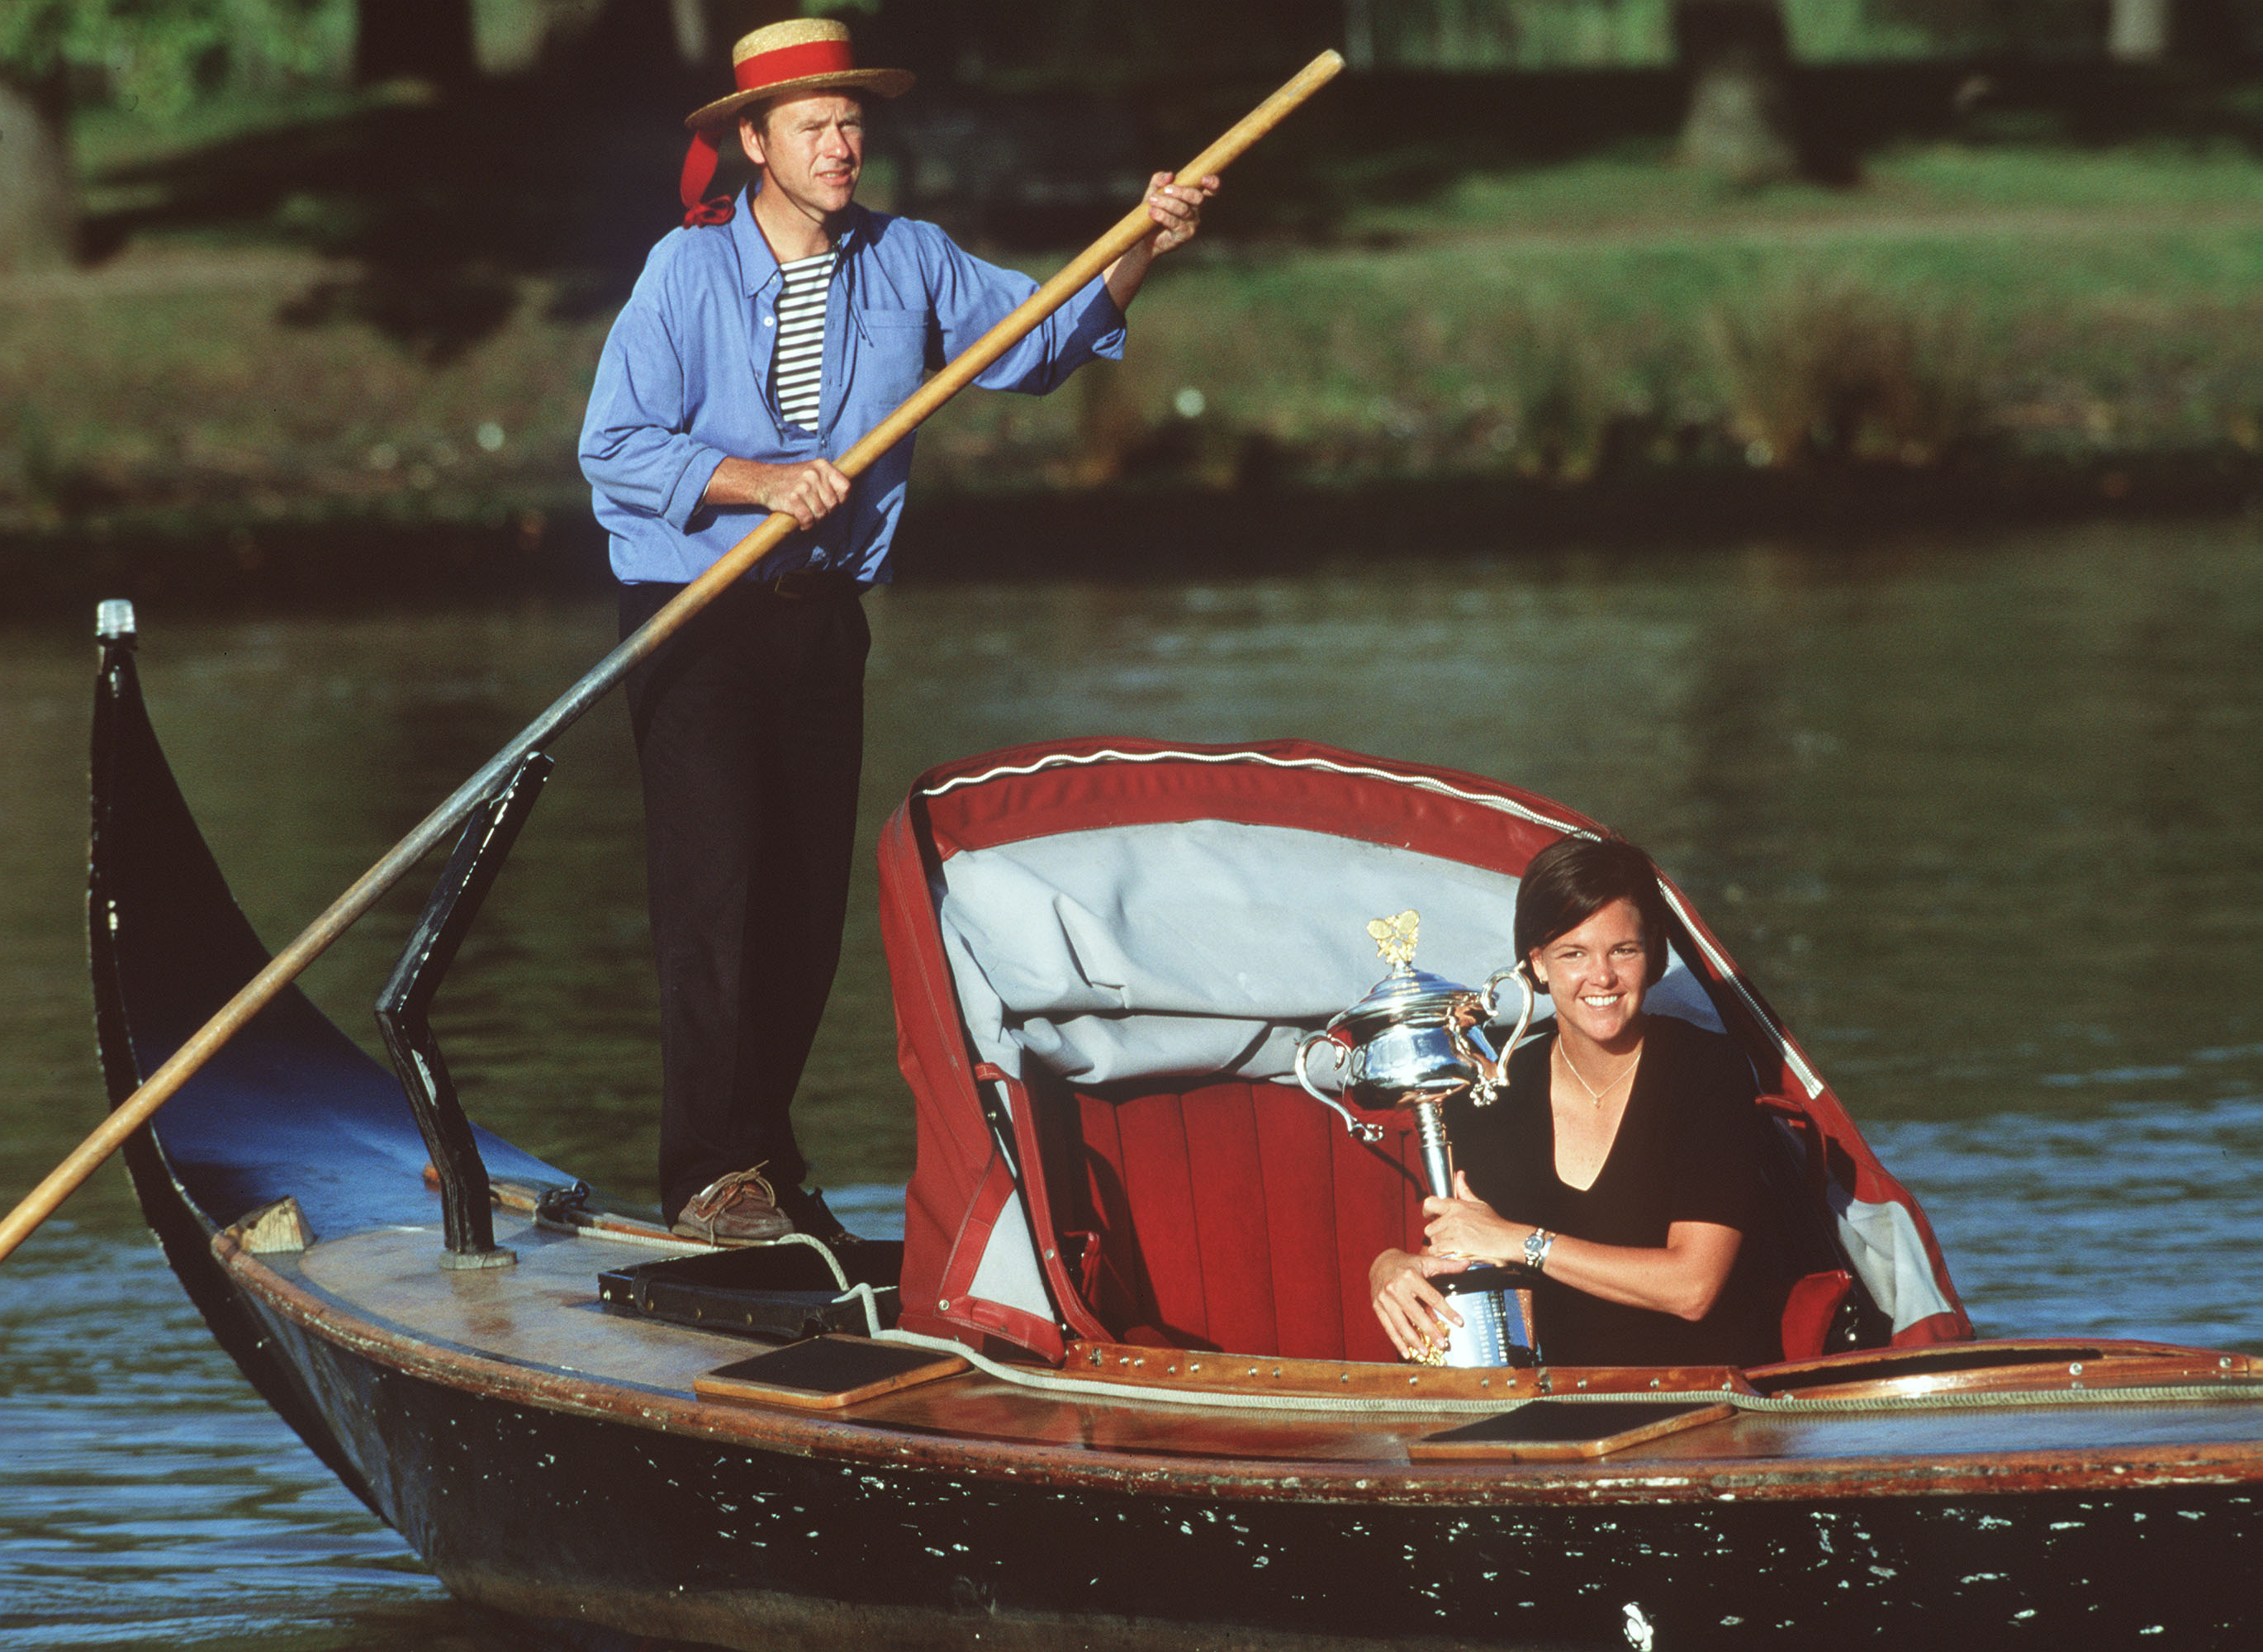 29 Jan 2000:  Lindsay Davenport of the USA with the Australian Open trophy takes a ride in a gondola on the Yarra river after winning  the womens singles final at the Australian Open Tennis Championships, played at Melbourne Park in Melbourne, Australia.D